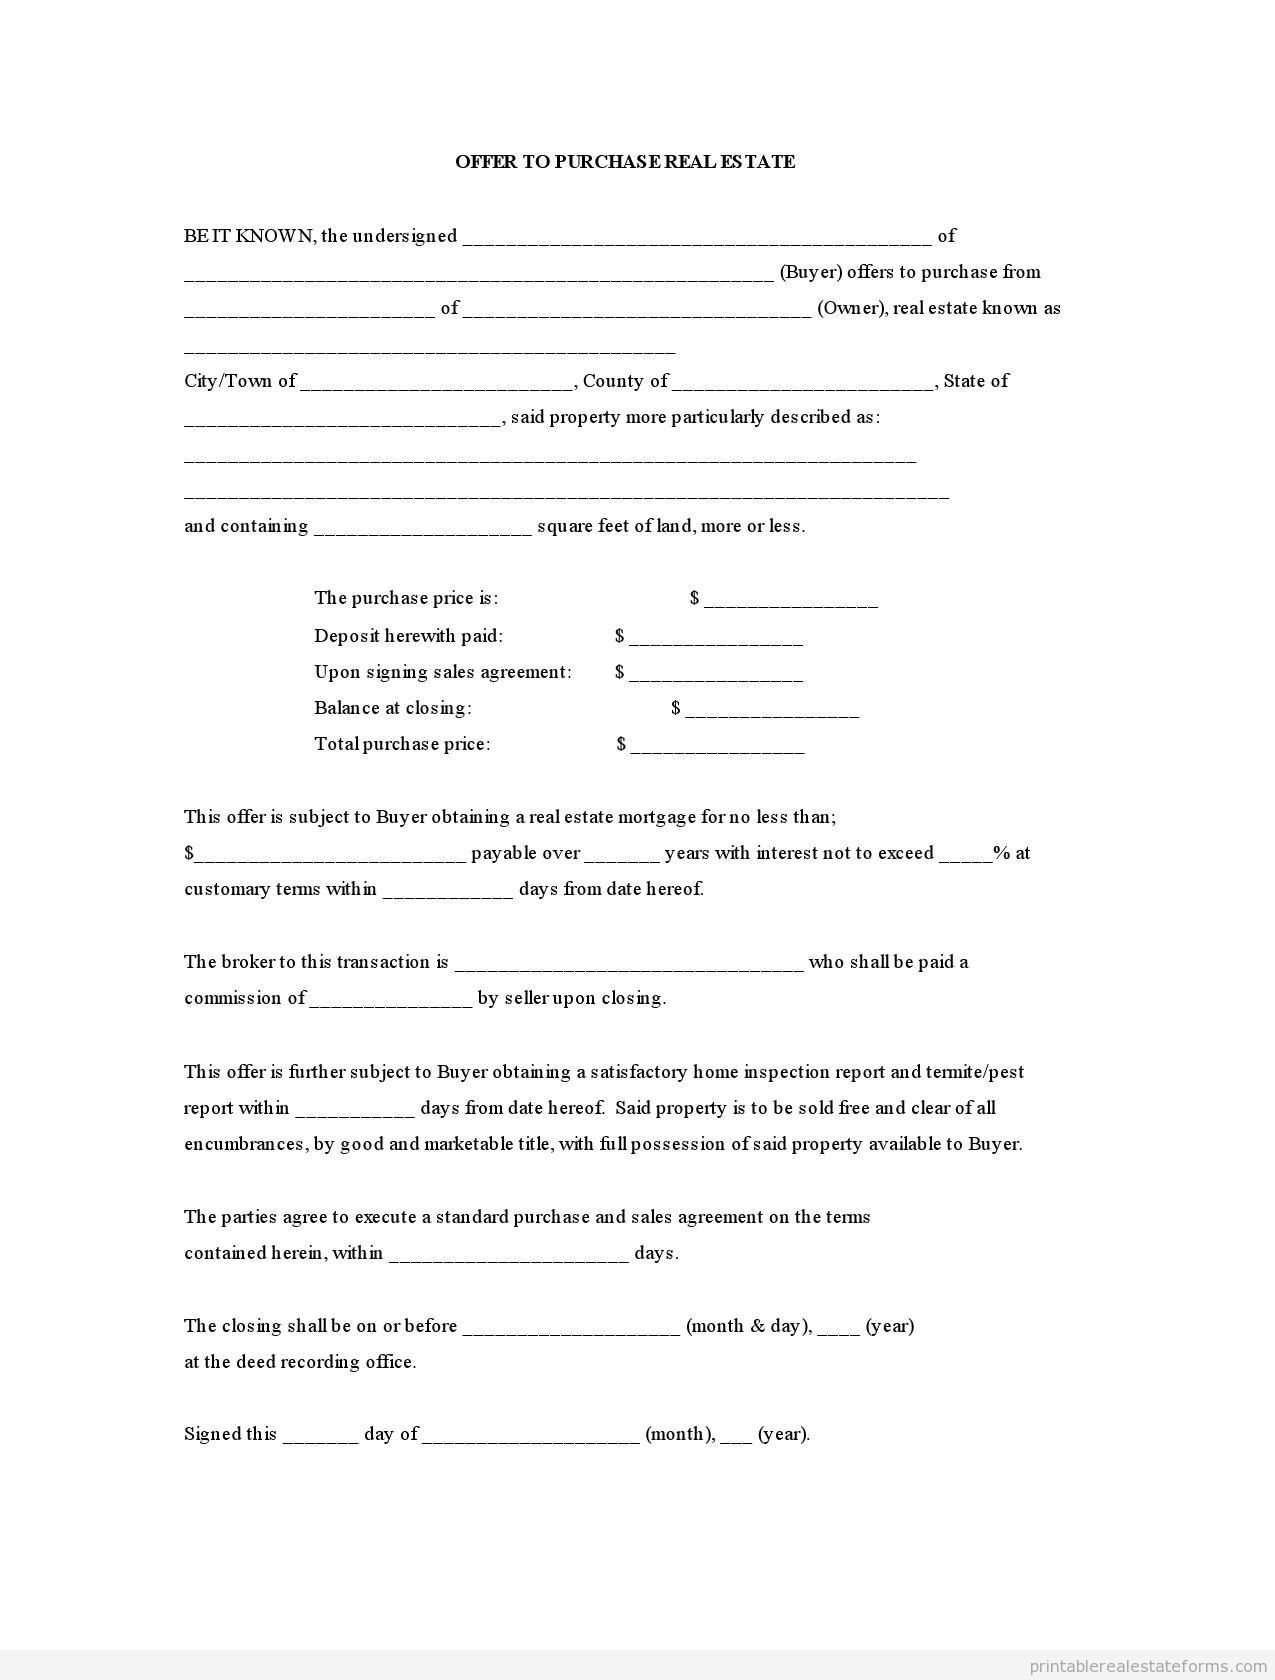 Printable offer to purchase real estate template 2015 – Real Estate Purchase Agreement Template Free